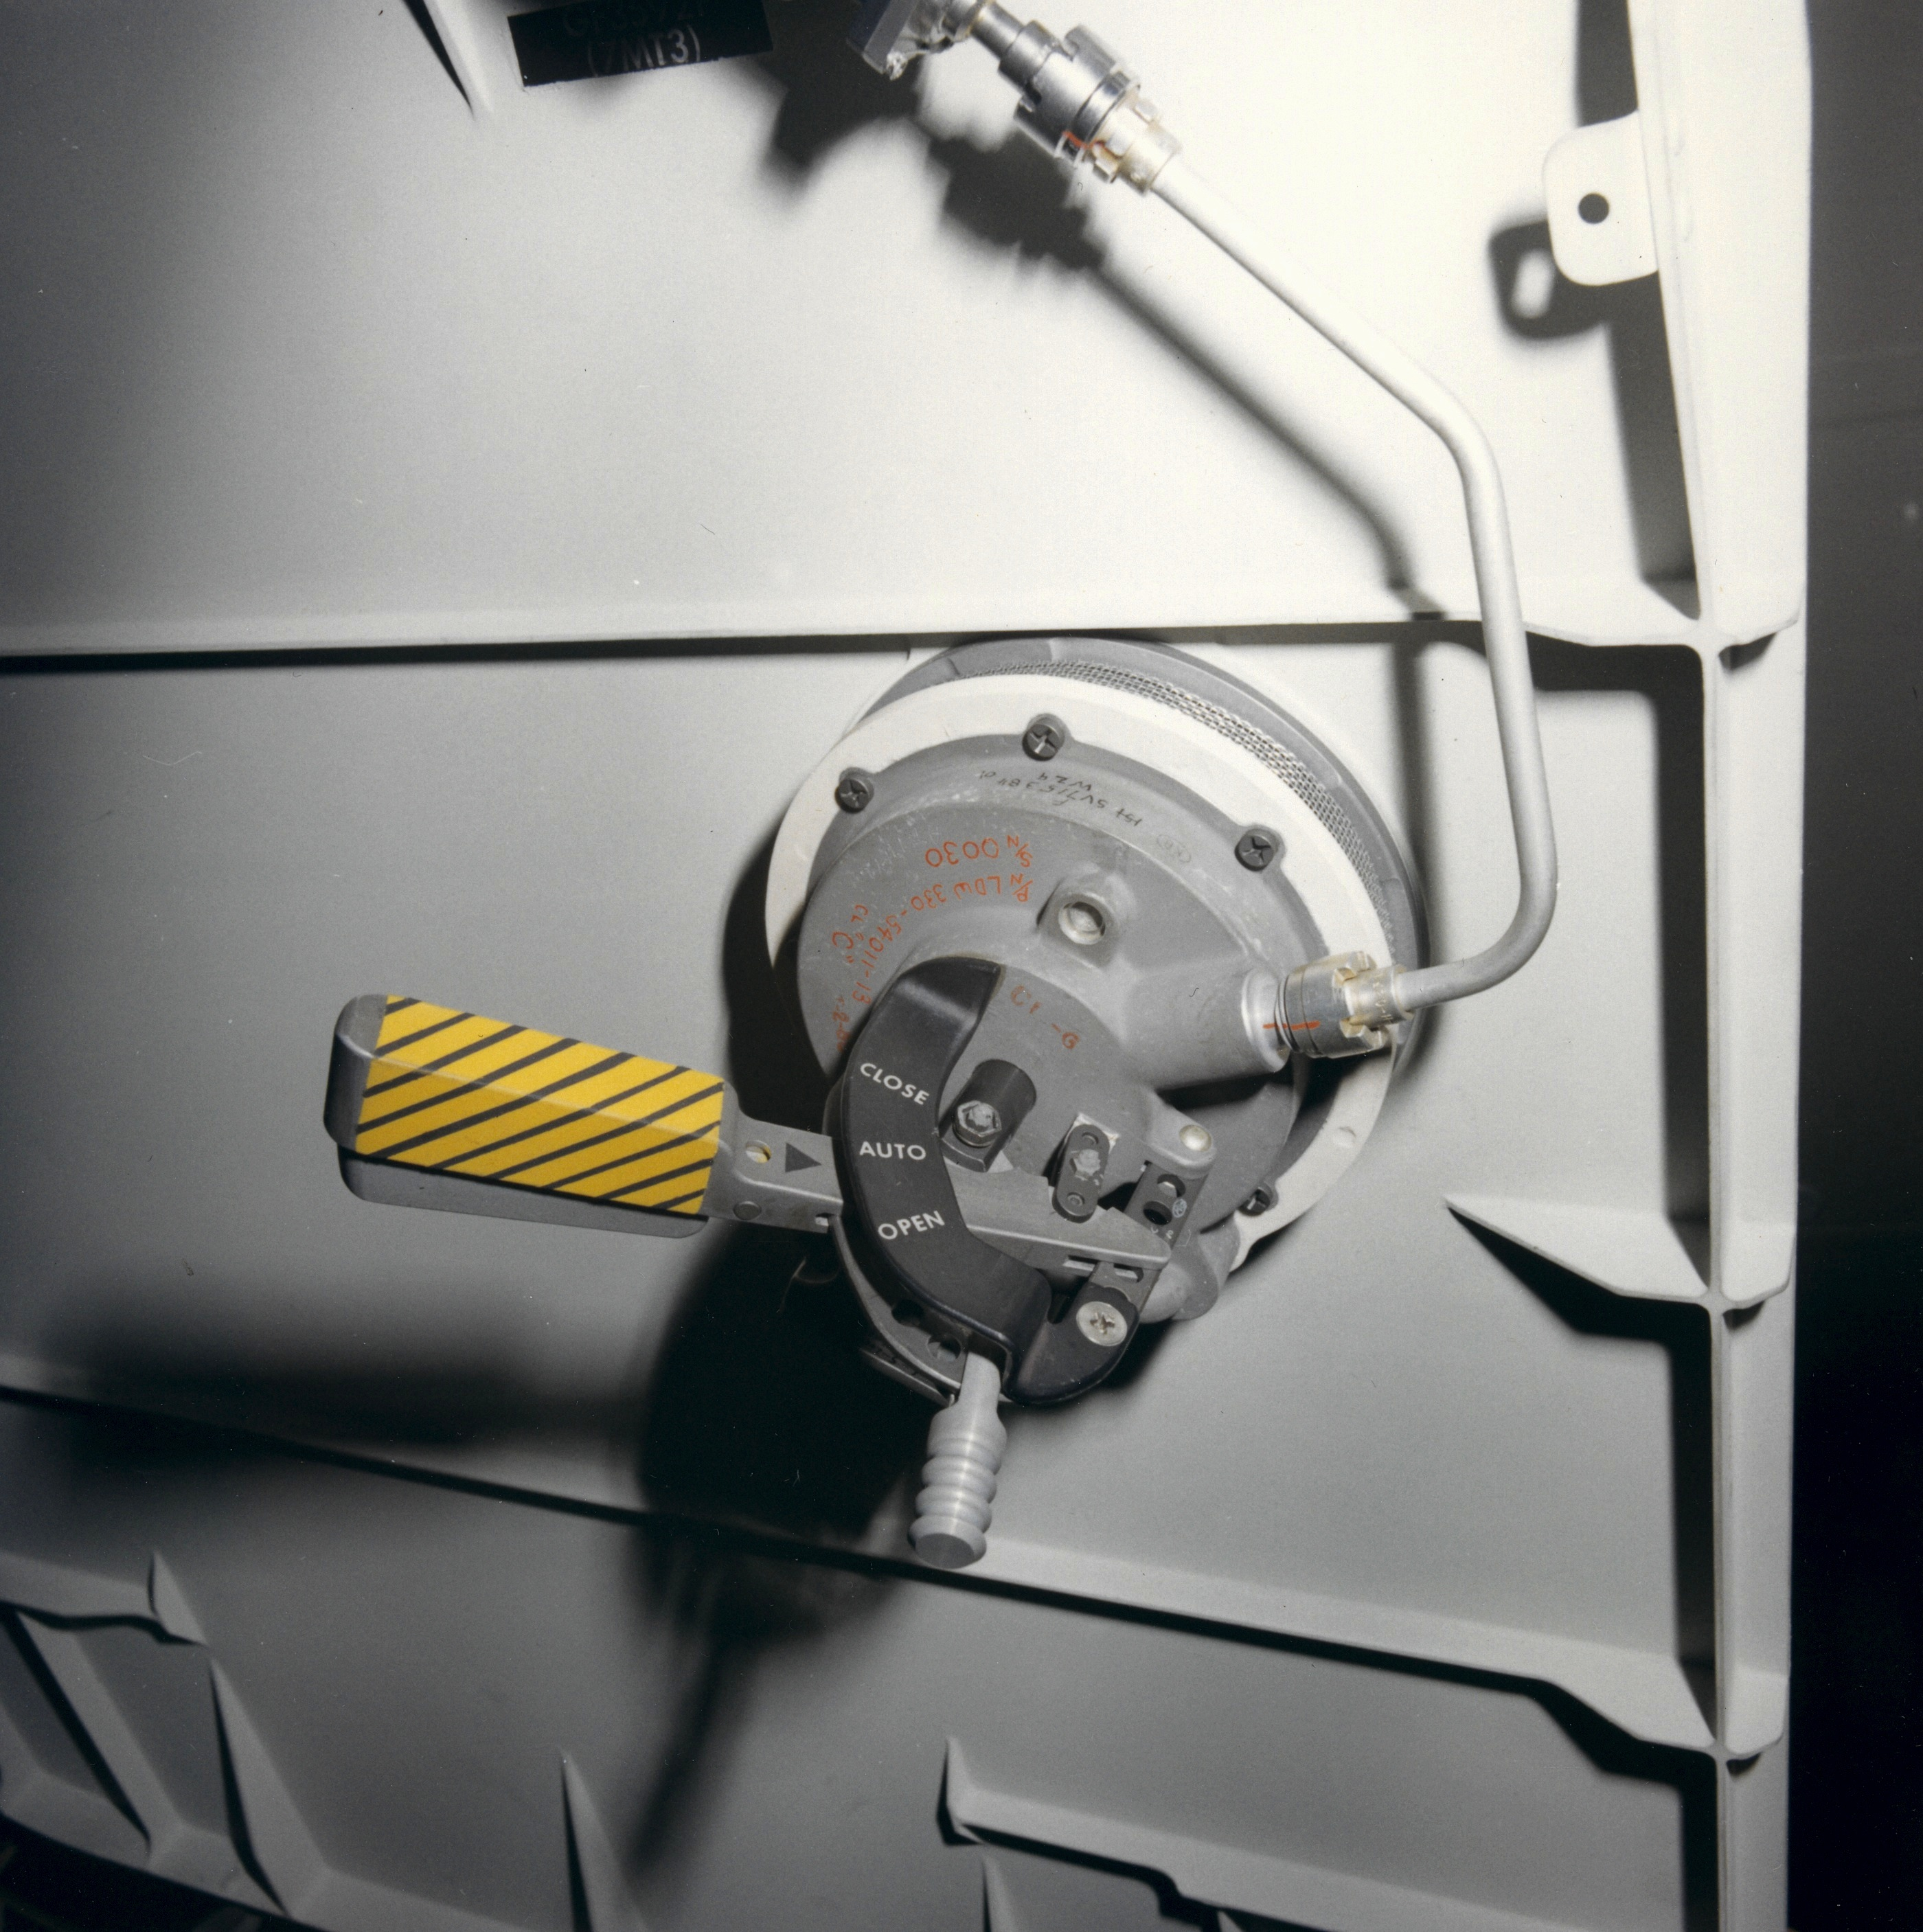 Lm 11 Orion Close Out Photos The Central Wiring Panel Cwp Chapter 1 6 Forward Hatch Pressure Relief Valve